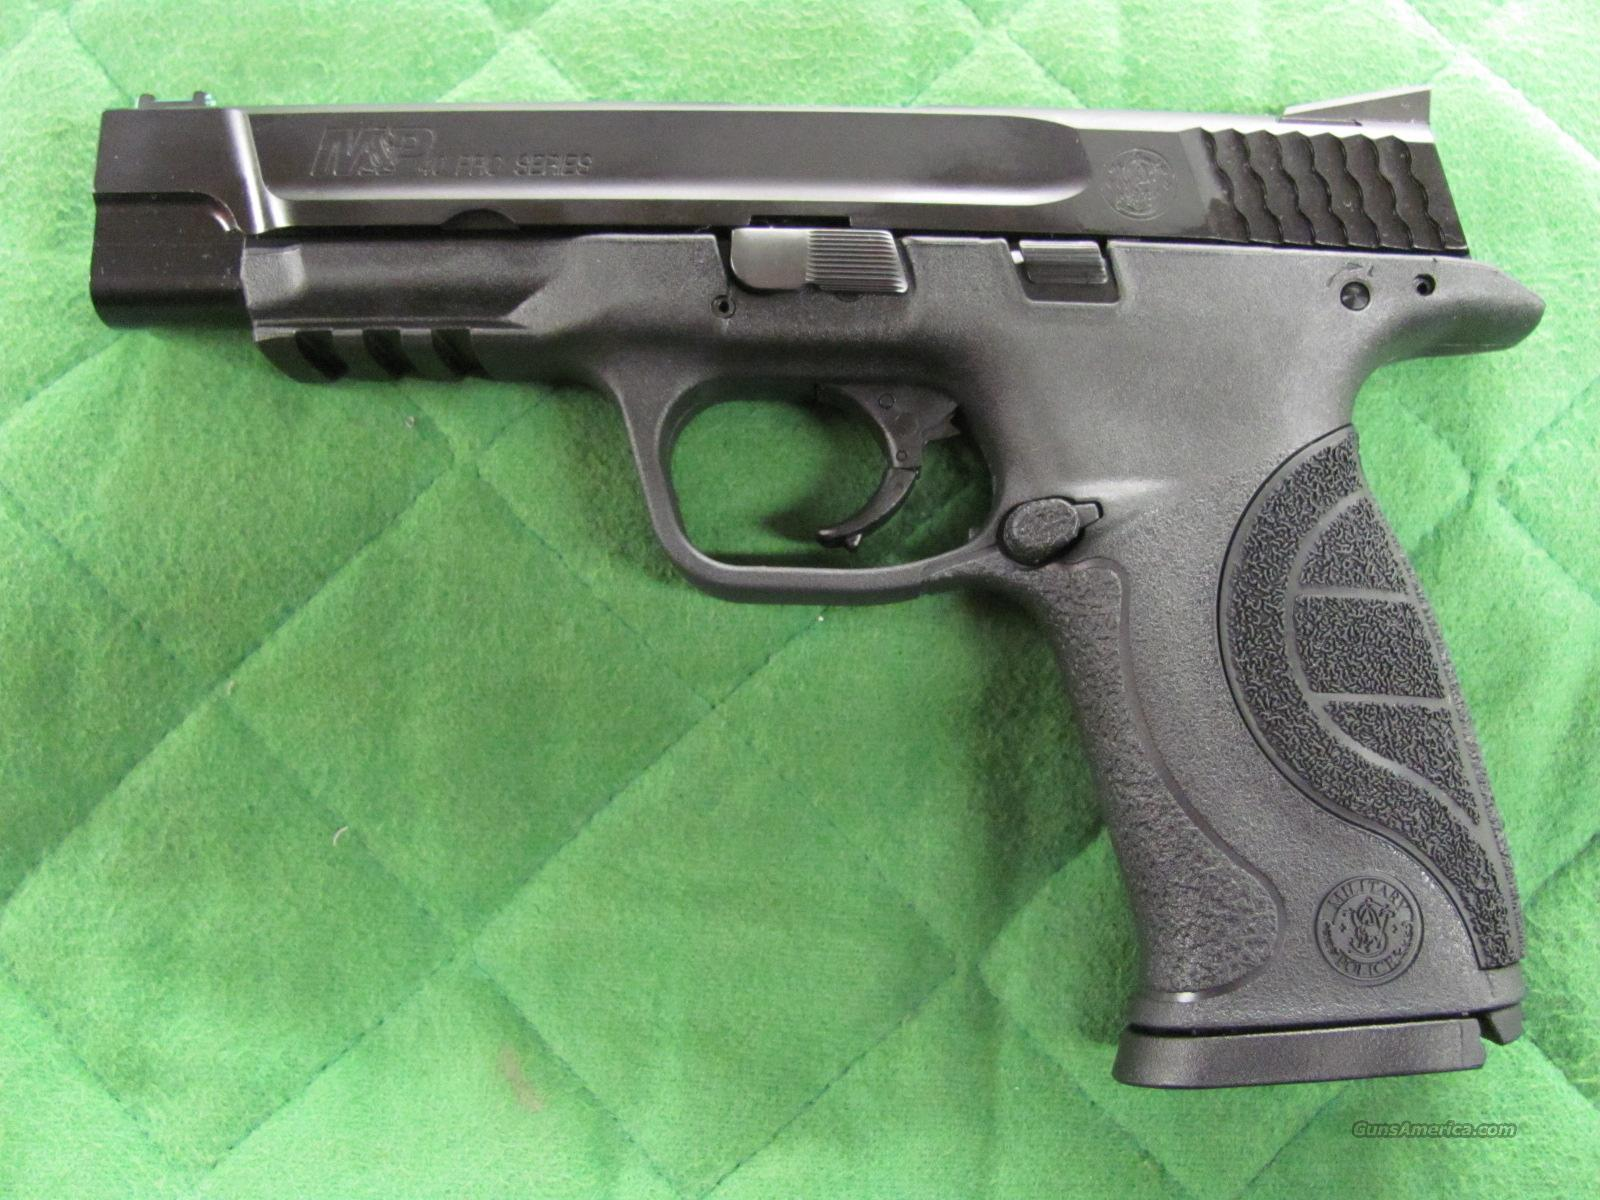 Smith & Wesson M&P 40 Pro Series 40 S&W  **NEW**  Guns > Pistols > Smith & Wesson Pistols - Autos > Polymer Frame